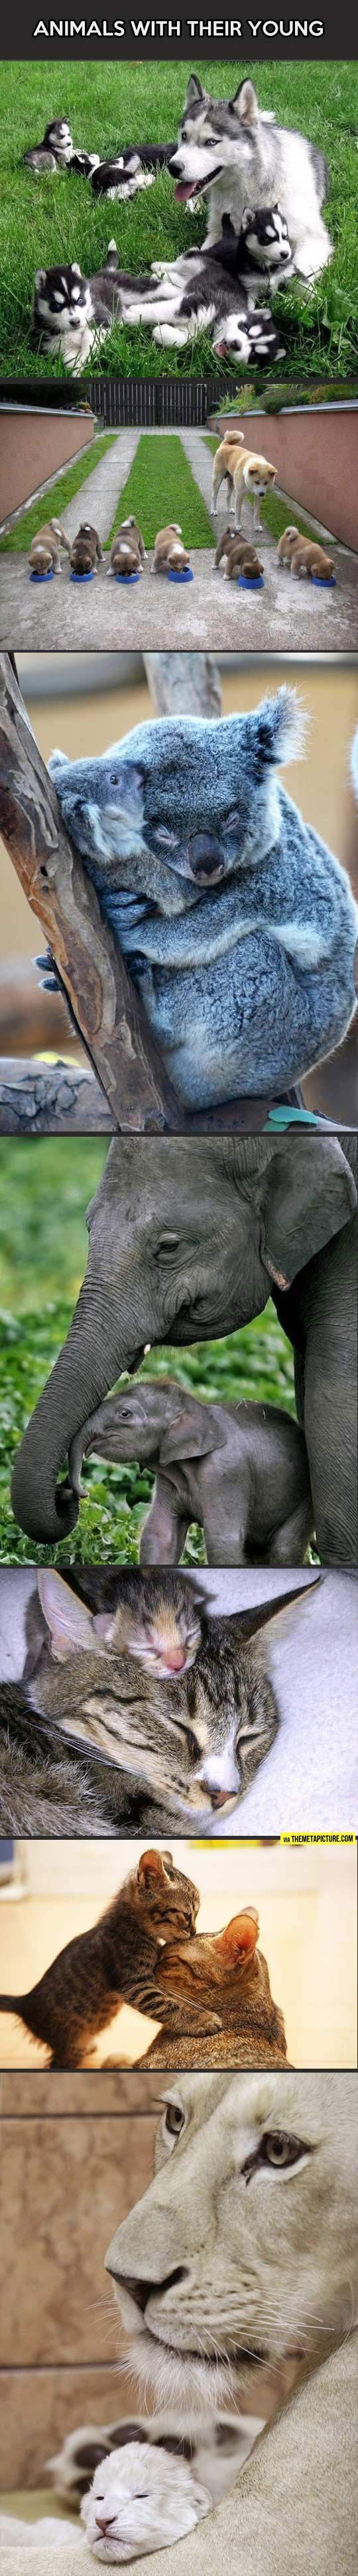 Animals with their babies